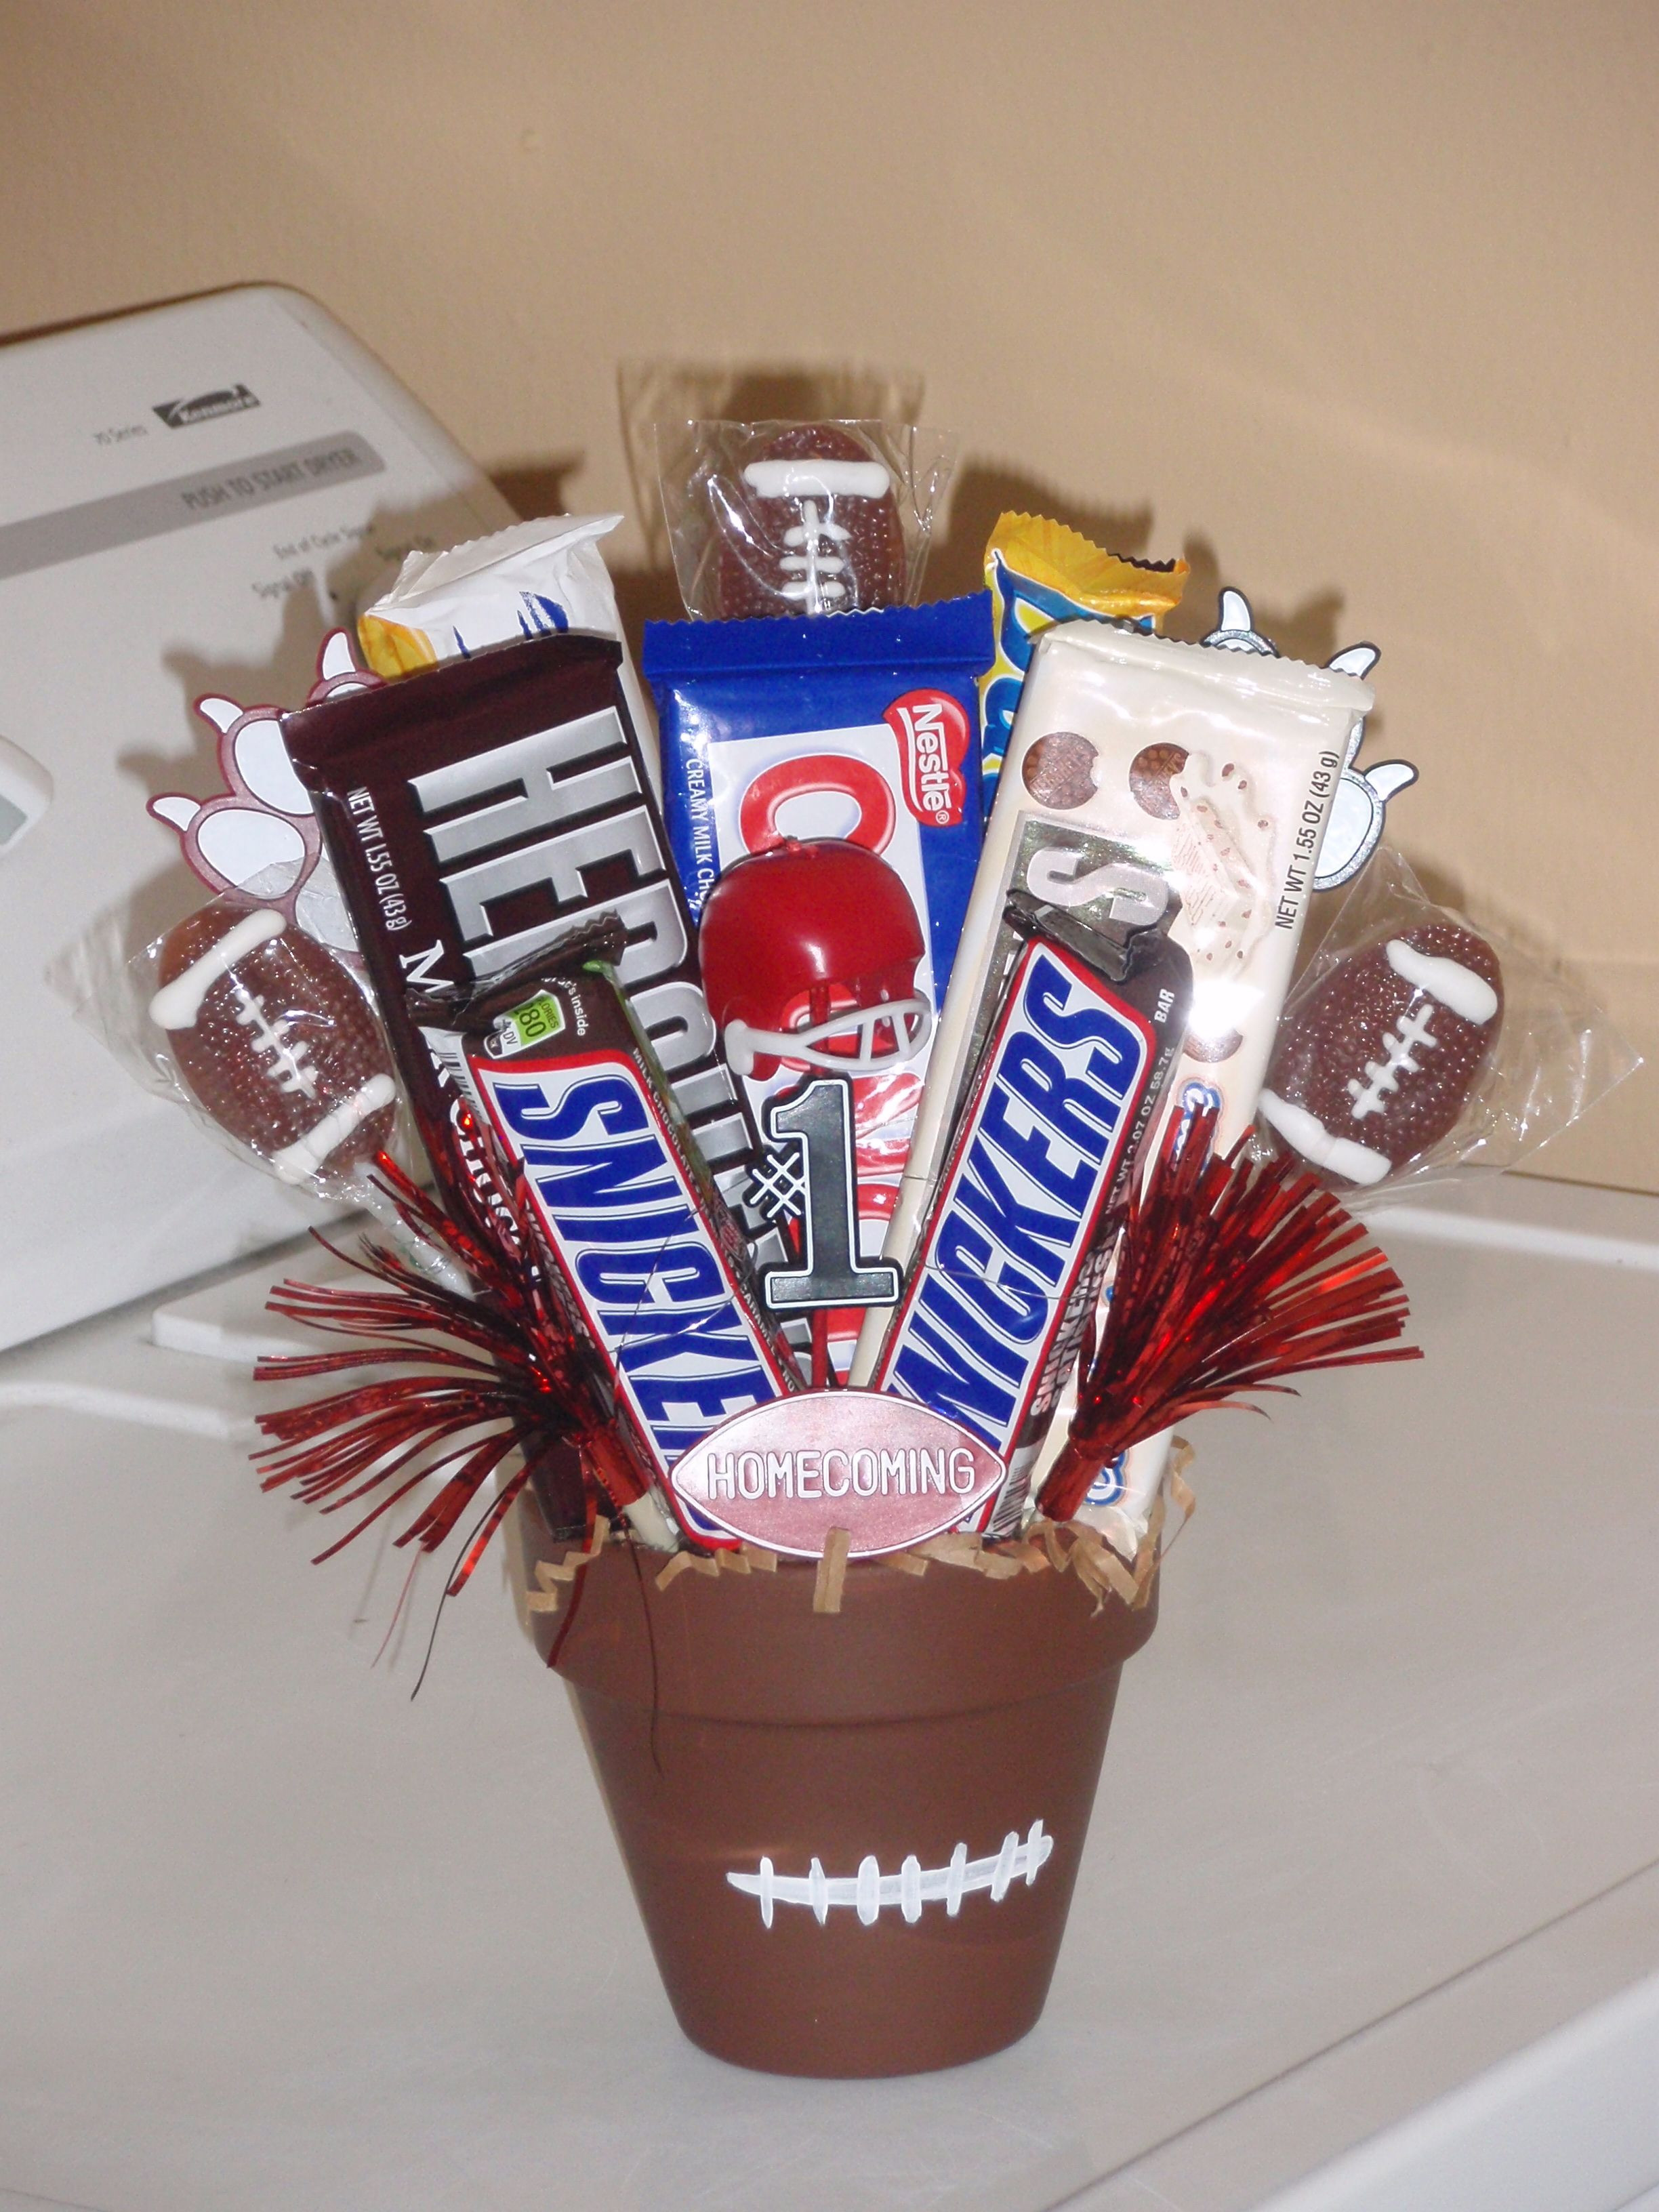 Best ideas about Football Gift Ideas For Boys . Save or Pin Made this for a football player on Home ing Now.